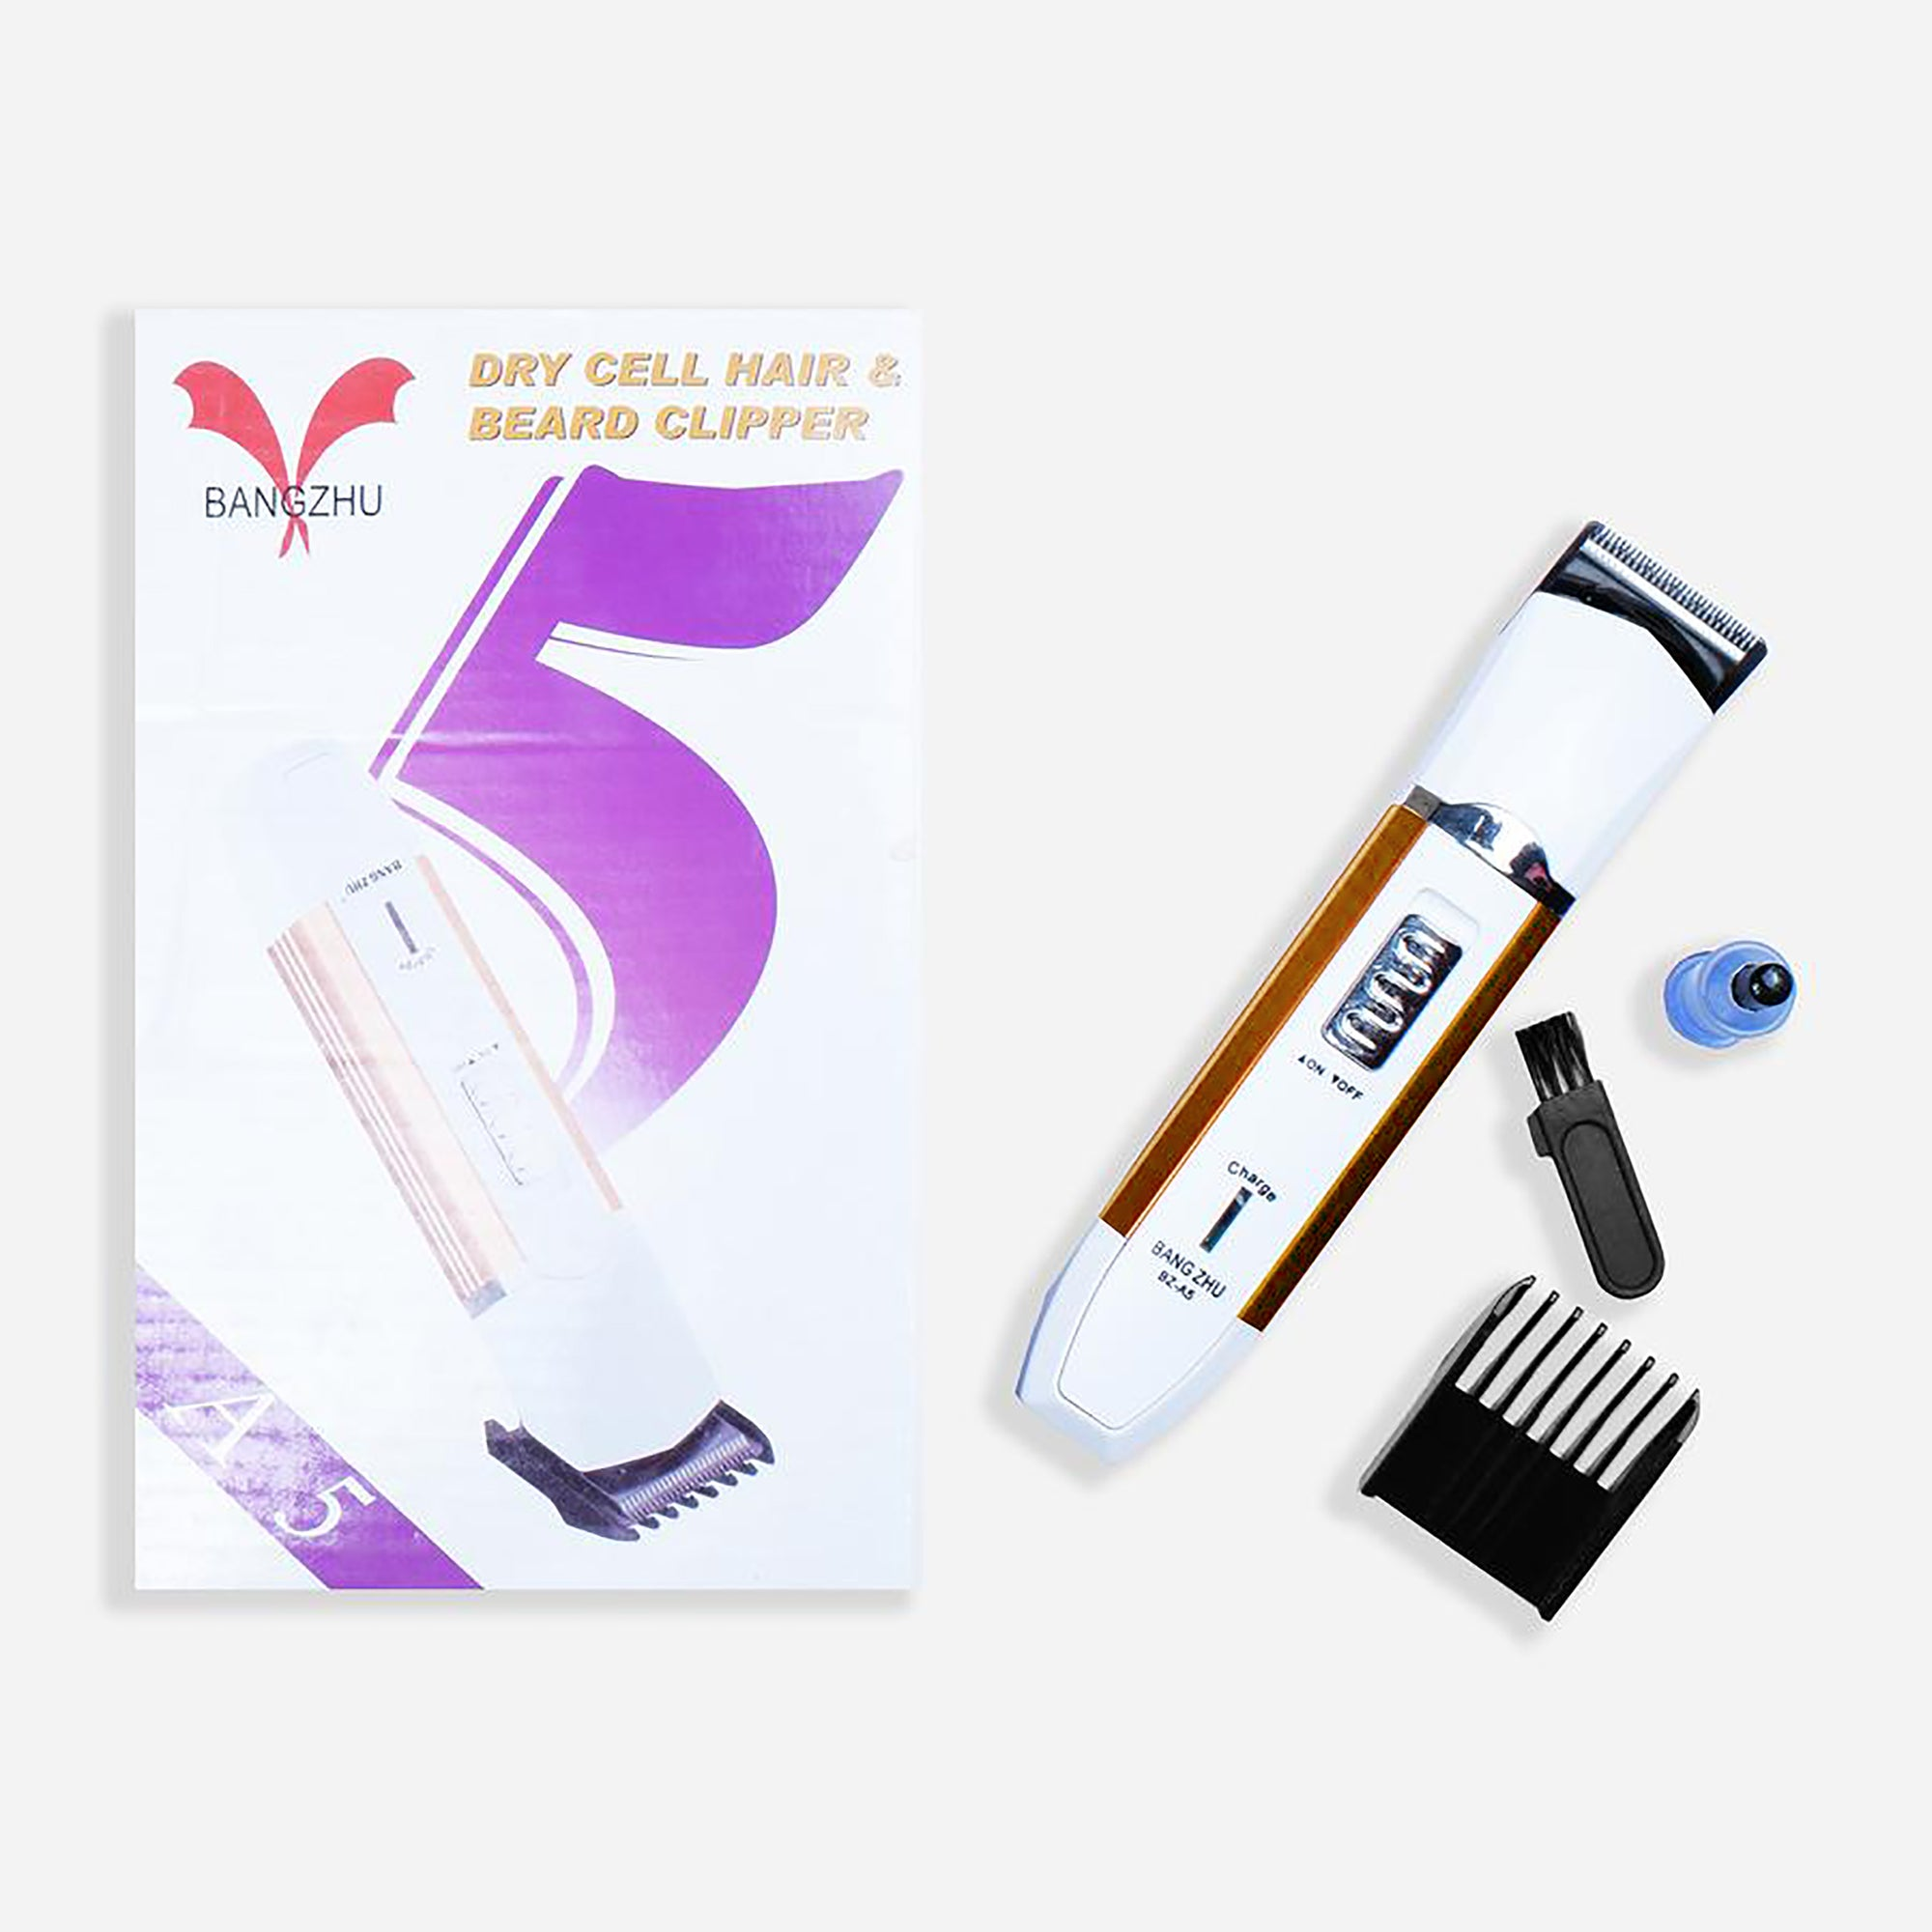 Bangzhu Dry Cell Hair Beard Clipper-SK0372-A5